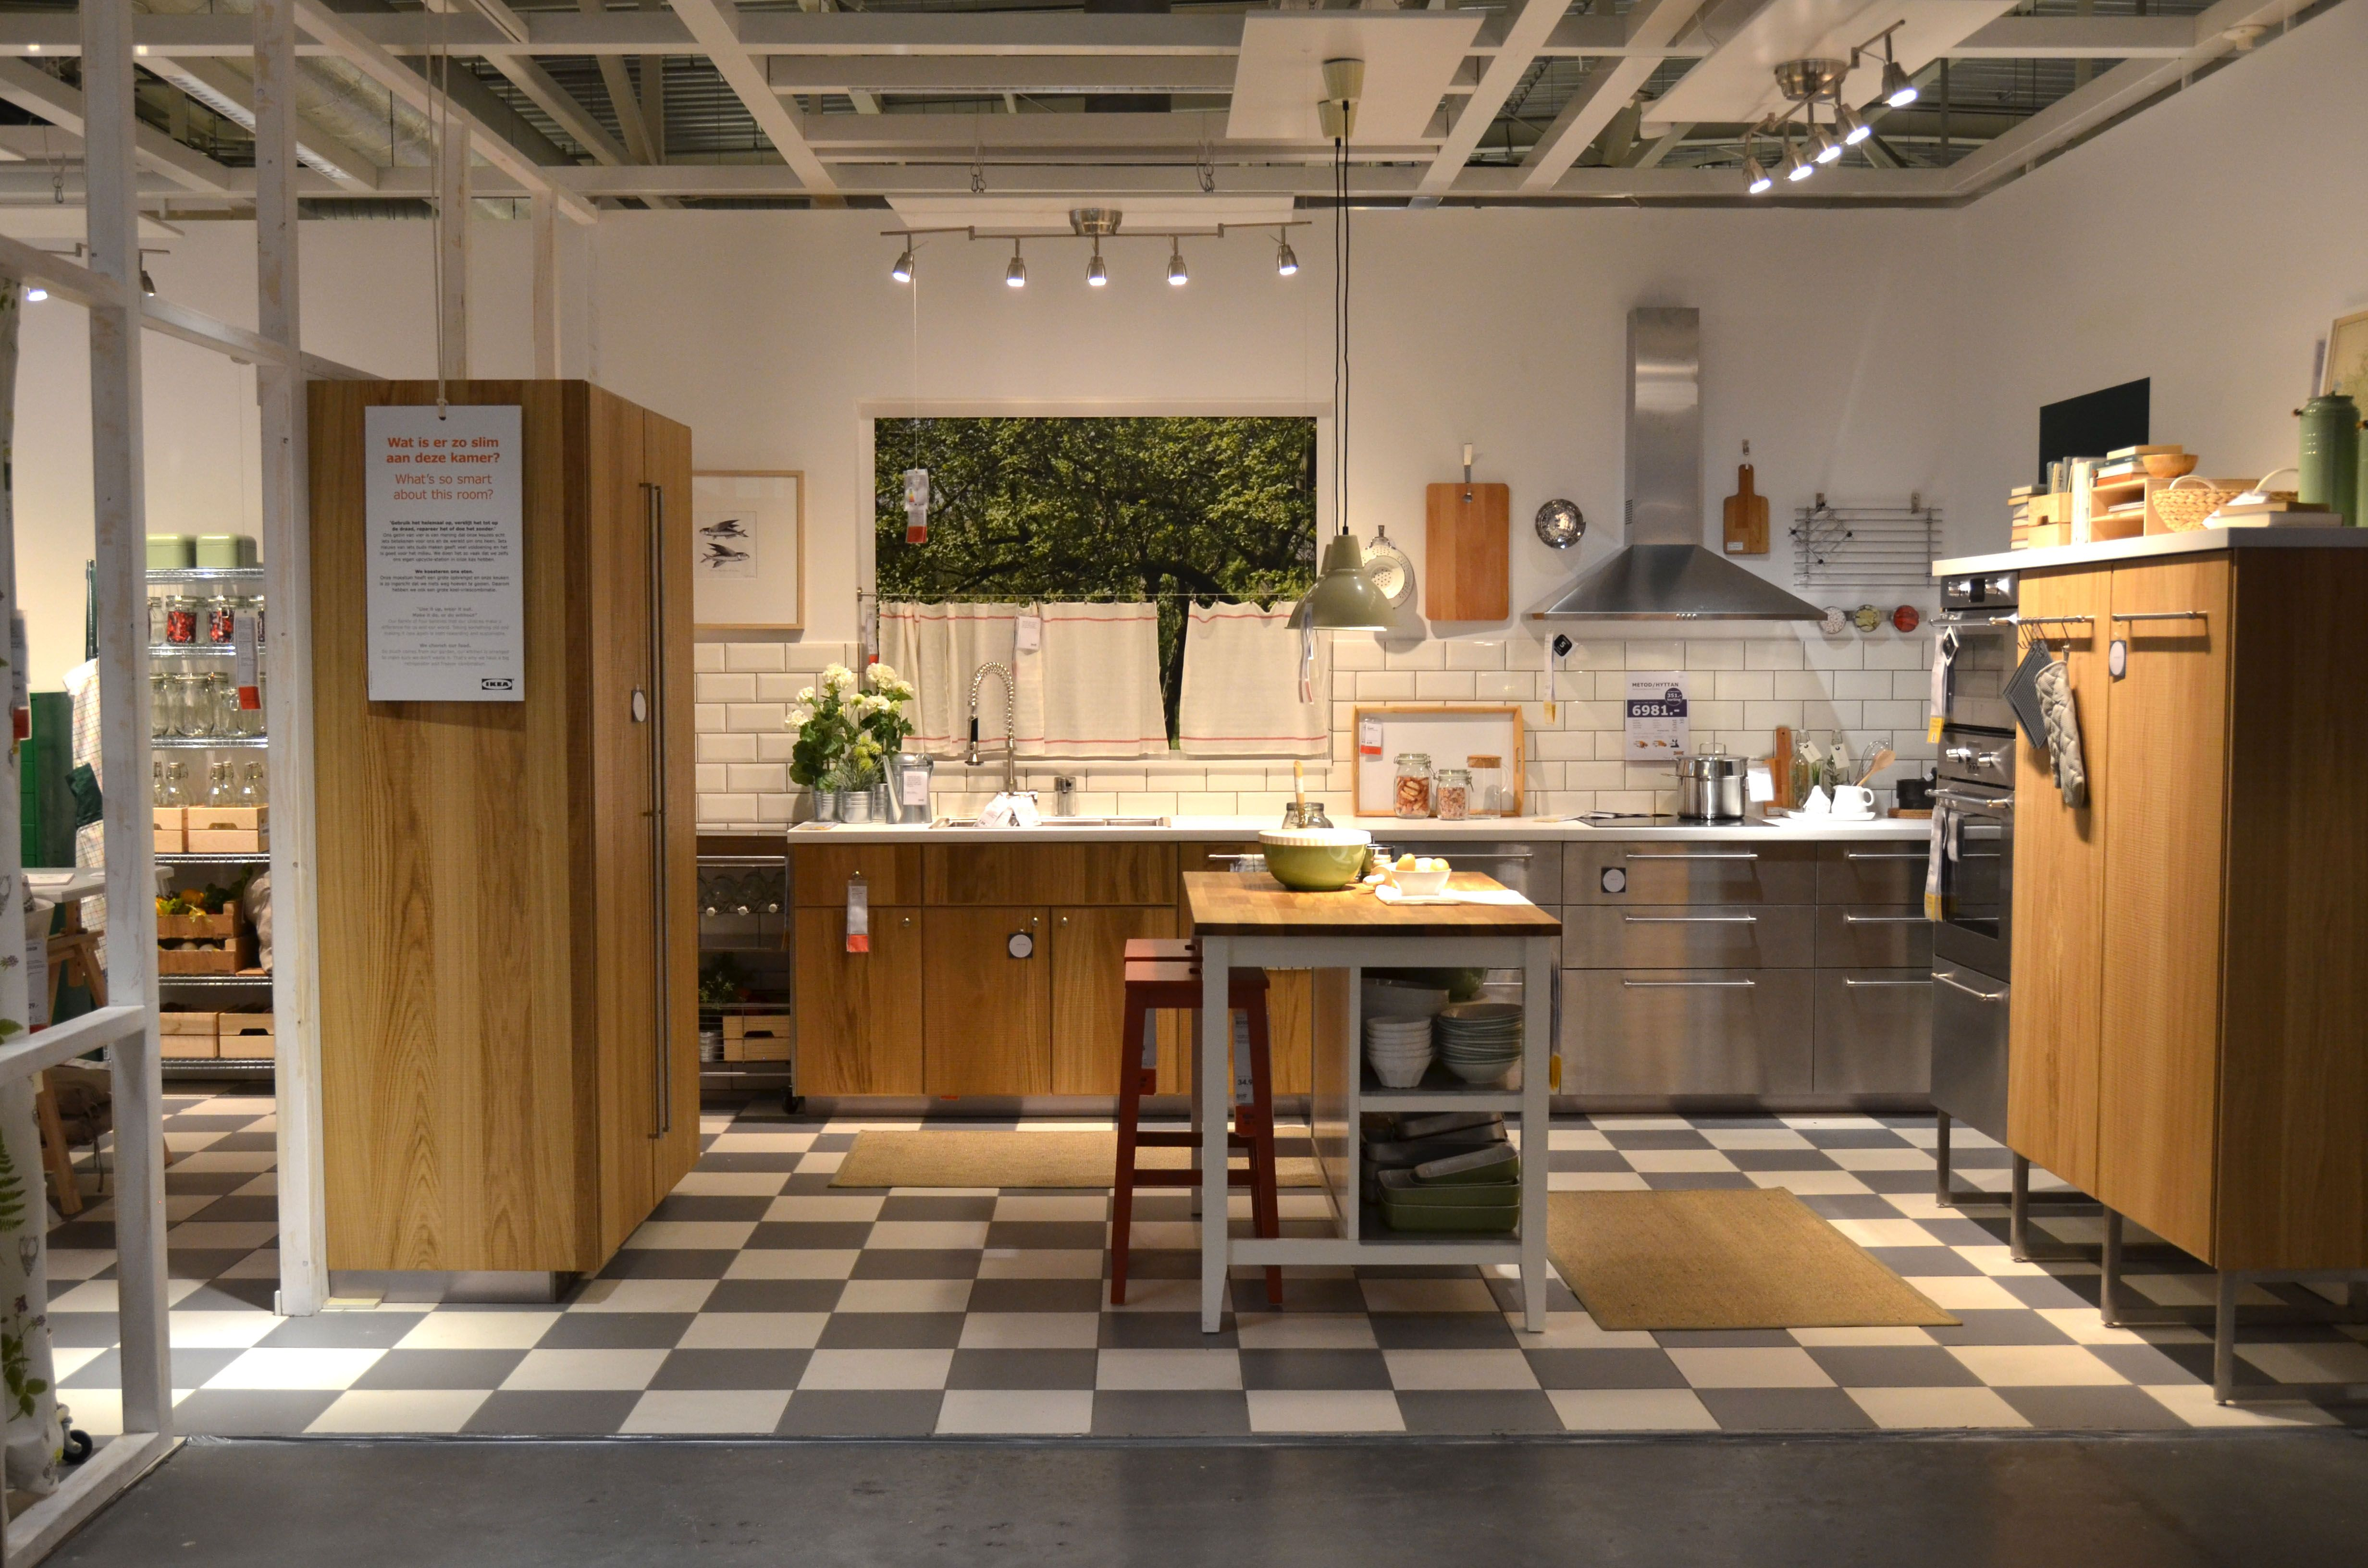 Hyttan Ikea Küche Ikea Delft Sustainable Kitchen Metod Hyttan Grevsta Kitchen